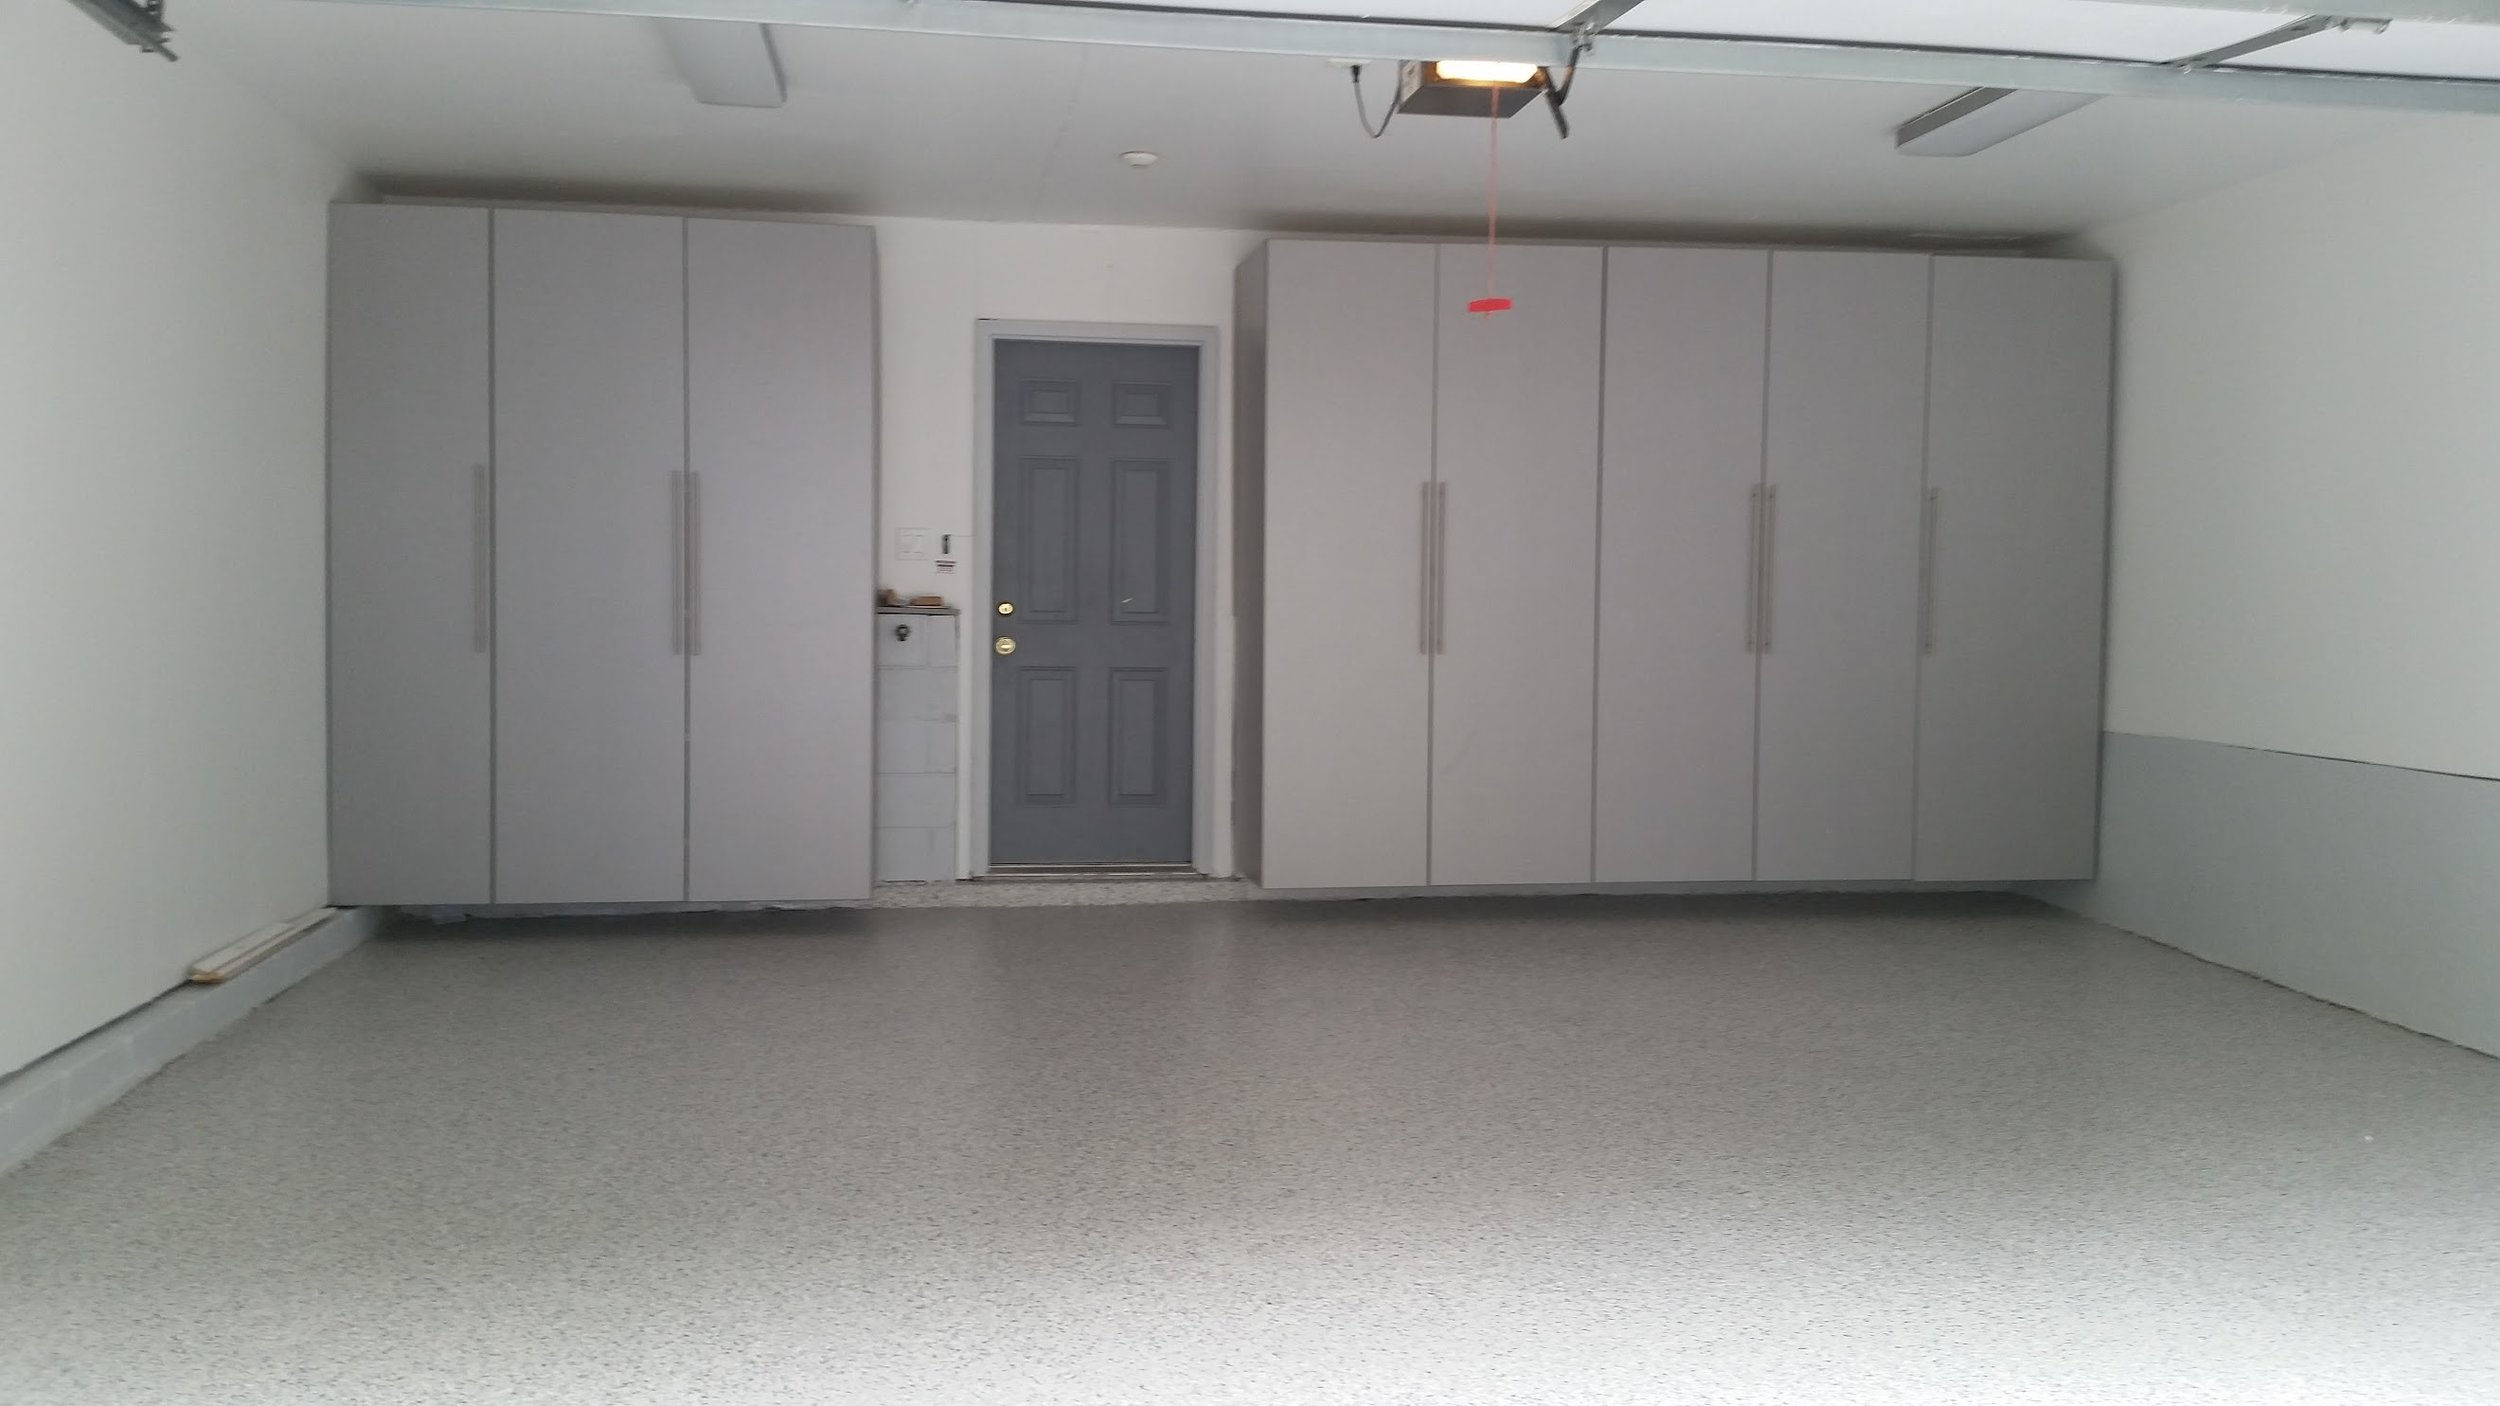 Garage concrete floor with polyurea / POLYASPARTIC coating with matching garage storage cabinets example